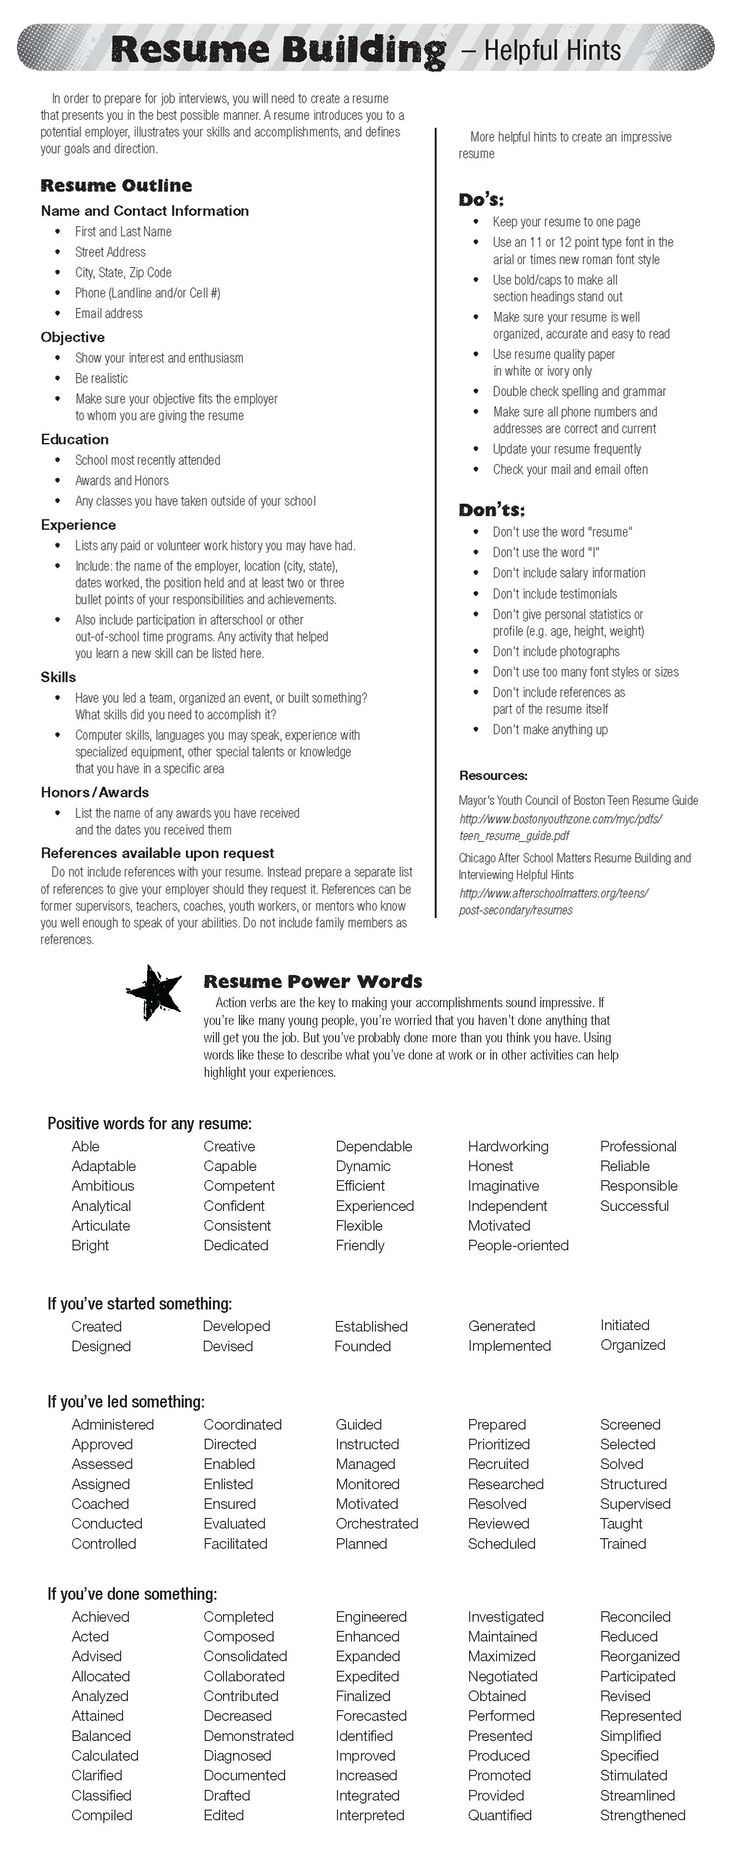 Opposenewapstandardsus  Terrific  Ideas About Resume On Pinterest  Cv Format Resume Cv And  With Exquisite  Ideas About Resume On Pinterest  Cv Format Resume Cv And Resume Templates With Charming Resume Services Orange County Ca Also Accomplishment Resume In Addition Caregiver Resume Examples And Hair Stylist Resume Examples As Well As How To Title A Resume Additionally Healthcare Resume Examples From Pinterestcom With Opposenewapstandardsus  Exquisite  Ideas About Resume On Pinterest  Cv Format Resume Cv And  With Charming  Ideas About Resume On Pinterest  Cv Format Resume Cv And Resume Templates And Terrific Resume Services Orange County Ca Also Accomplishment Resume In Addition Caregiver Resume Examples From Pinterestcom